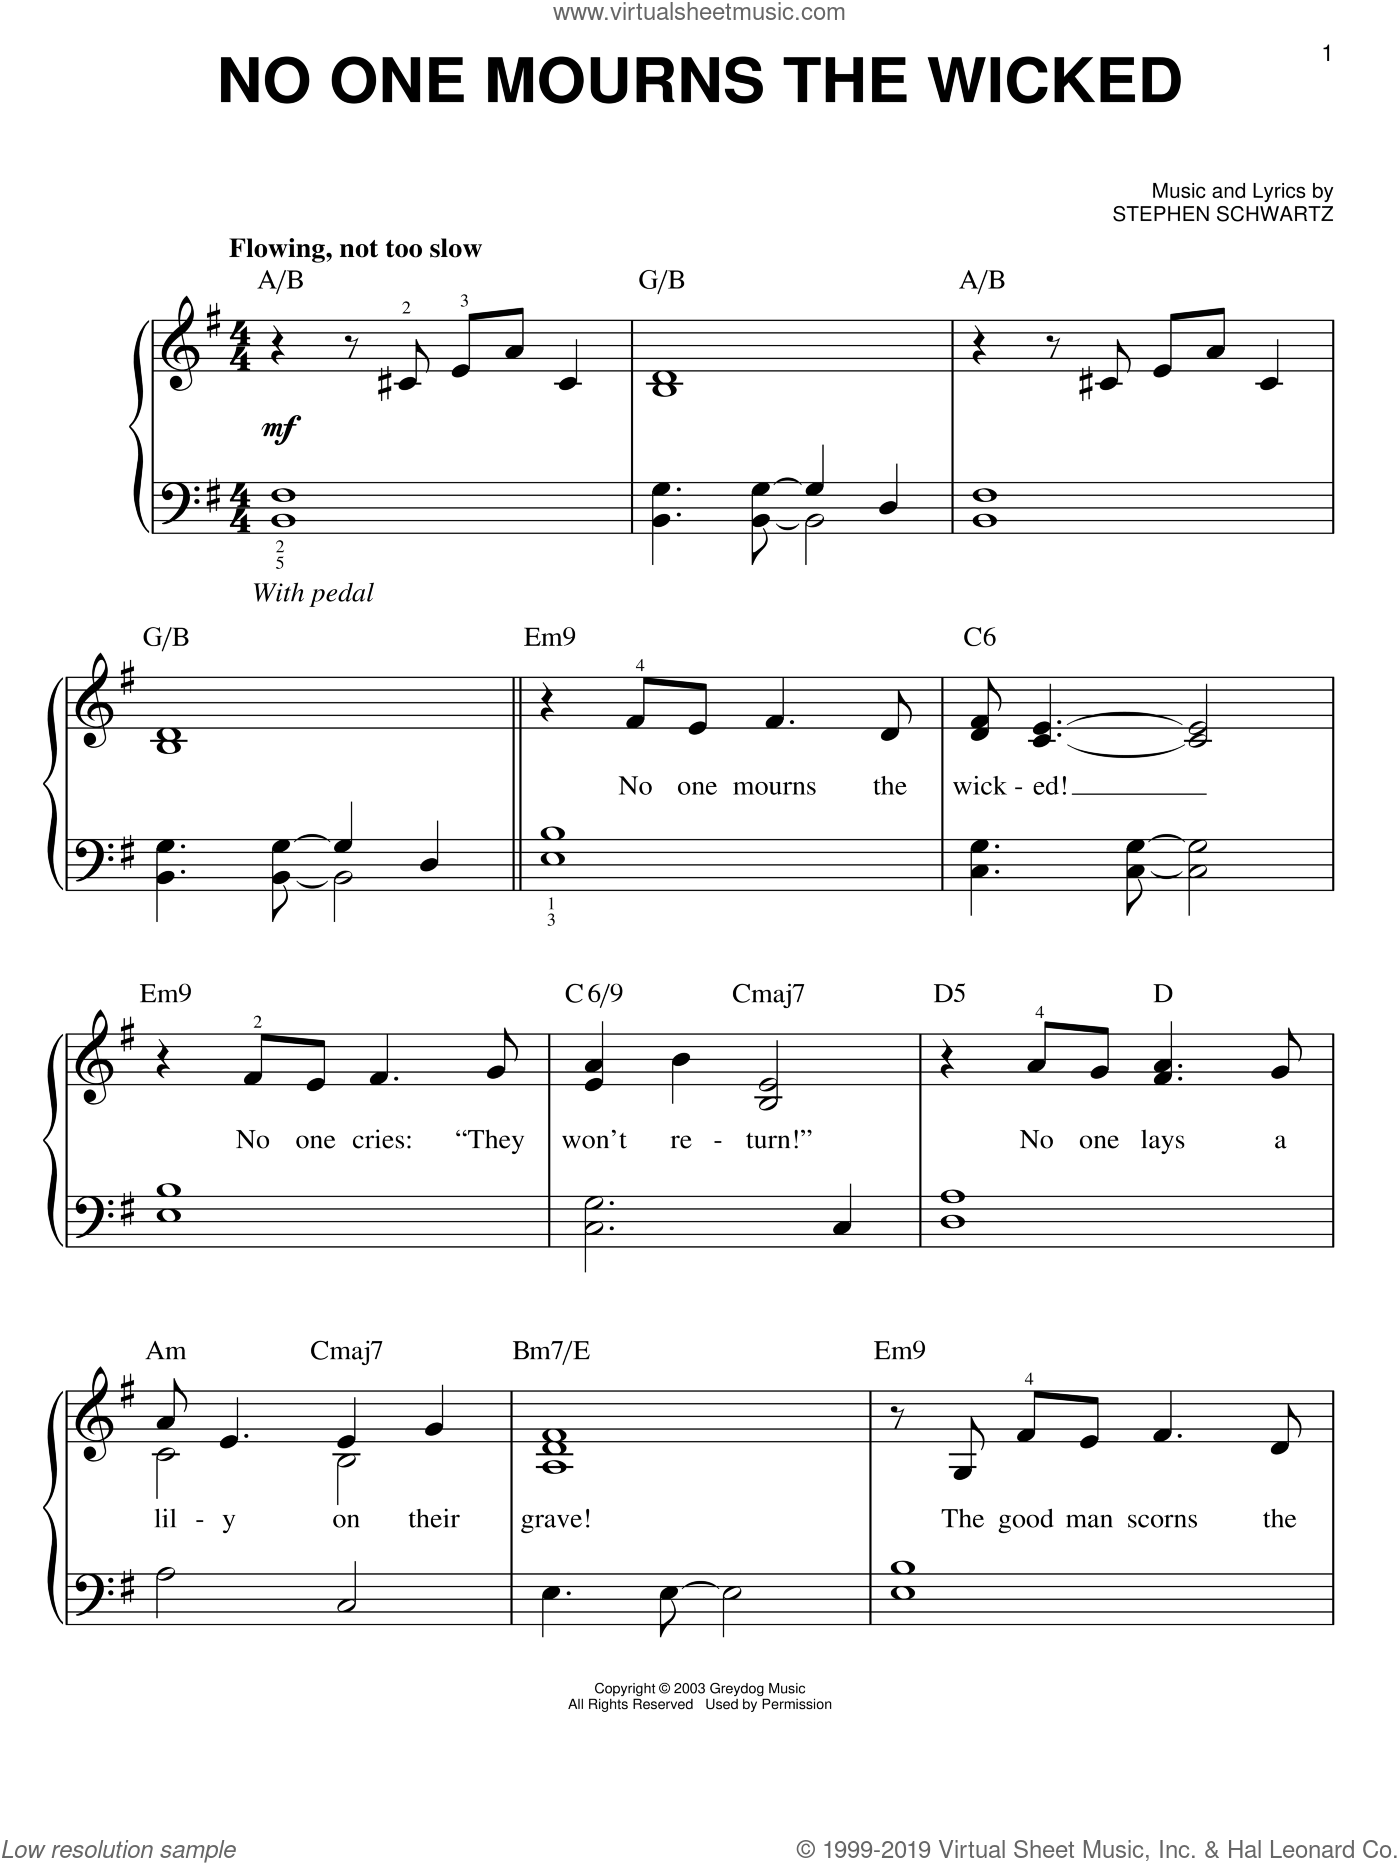 No One Mourns The Wicked sheet music for piano solo by Stephen Schwartz, easy. Score Image Preview.